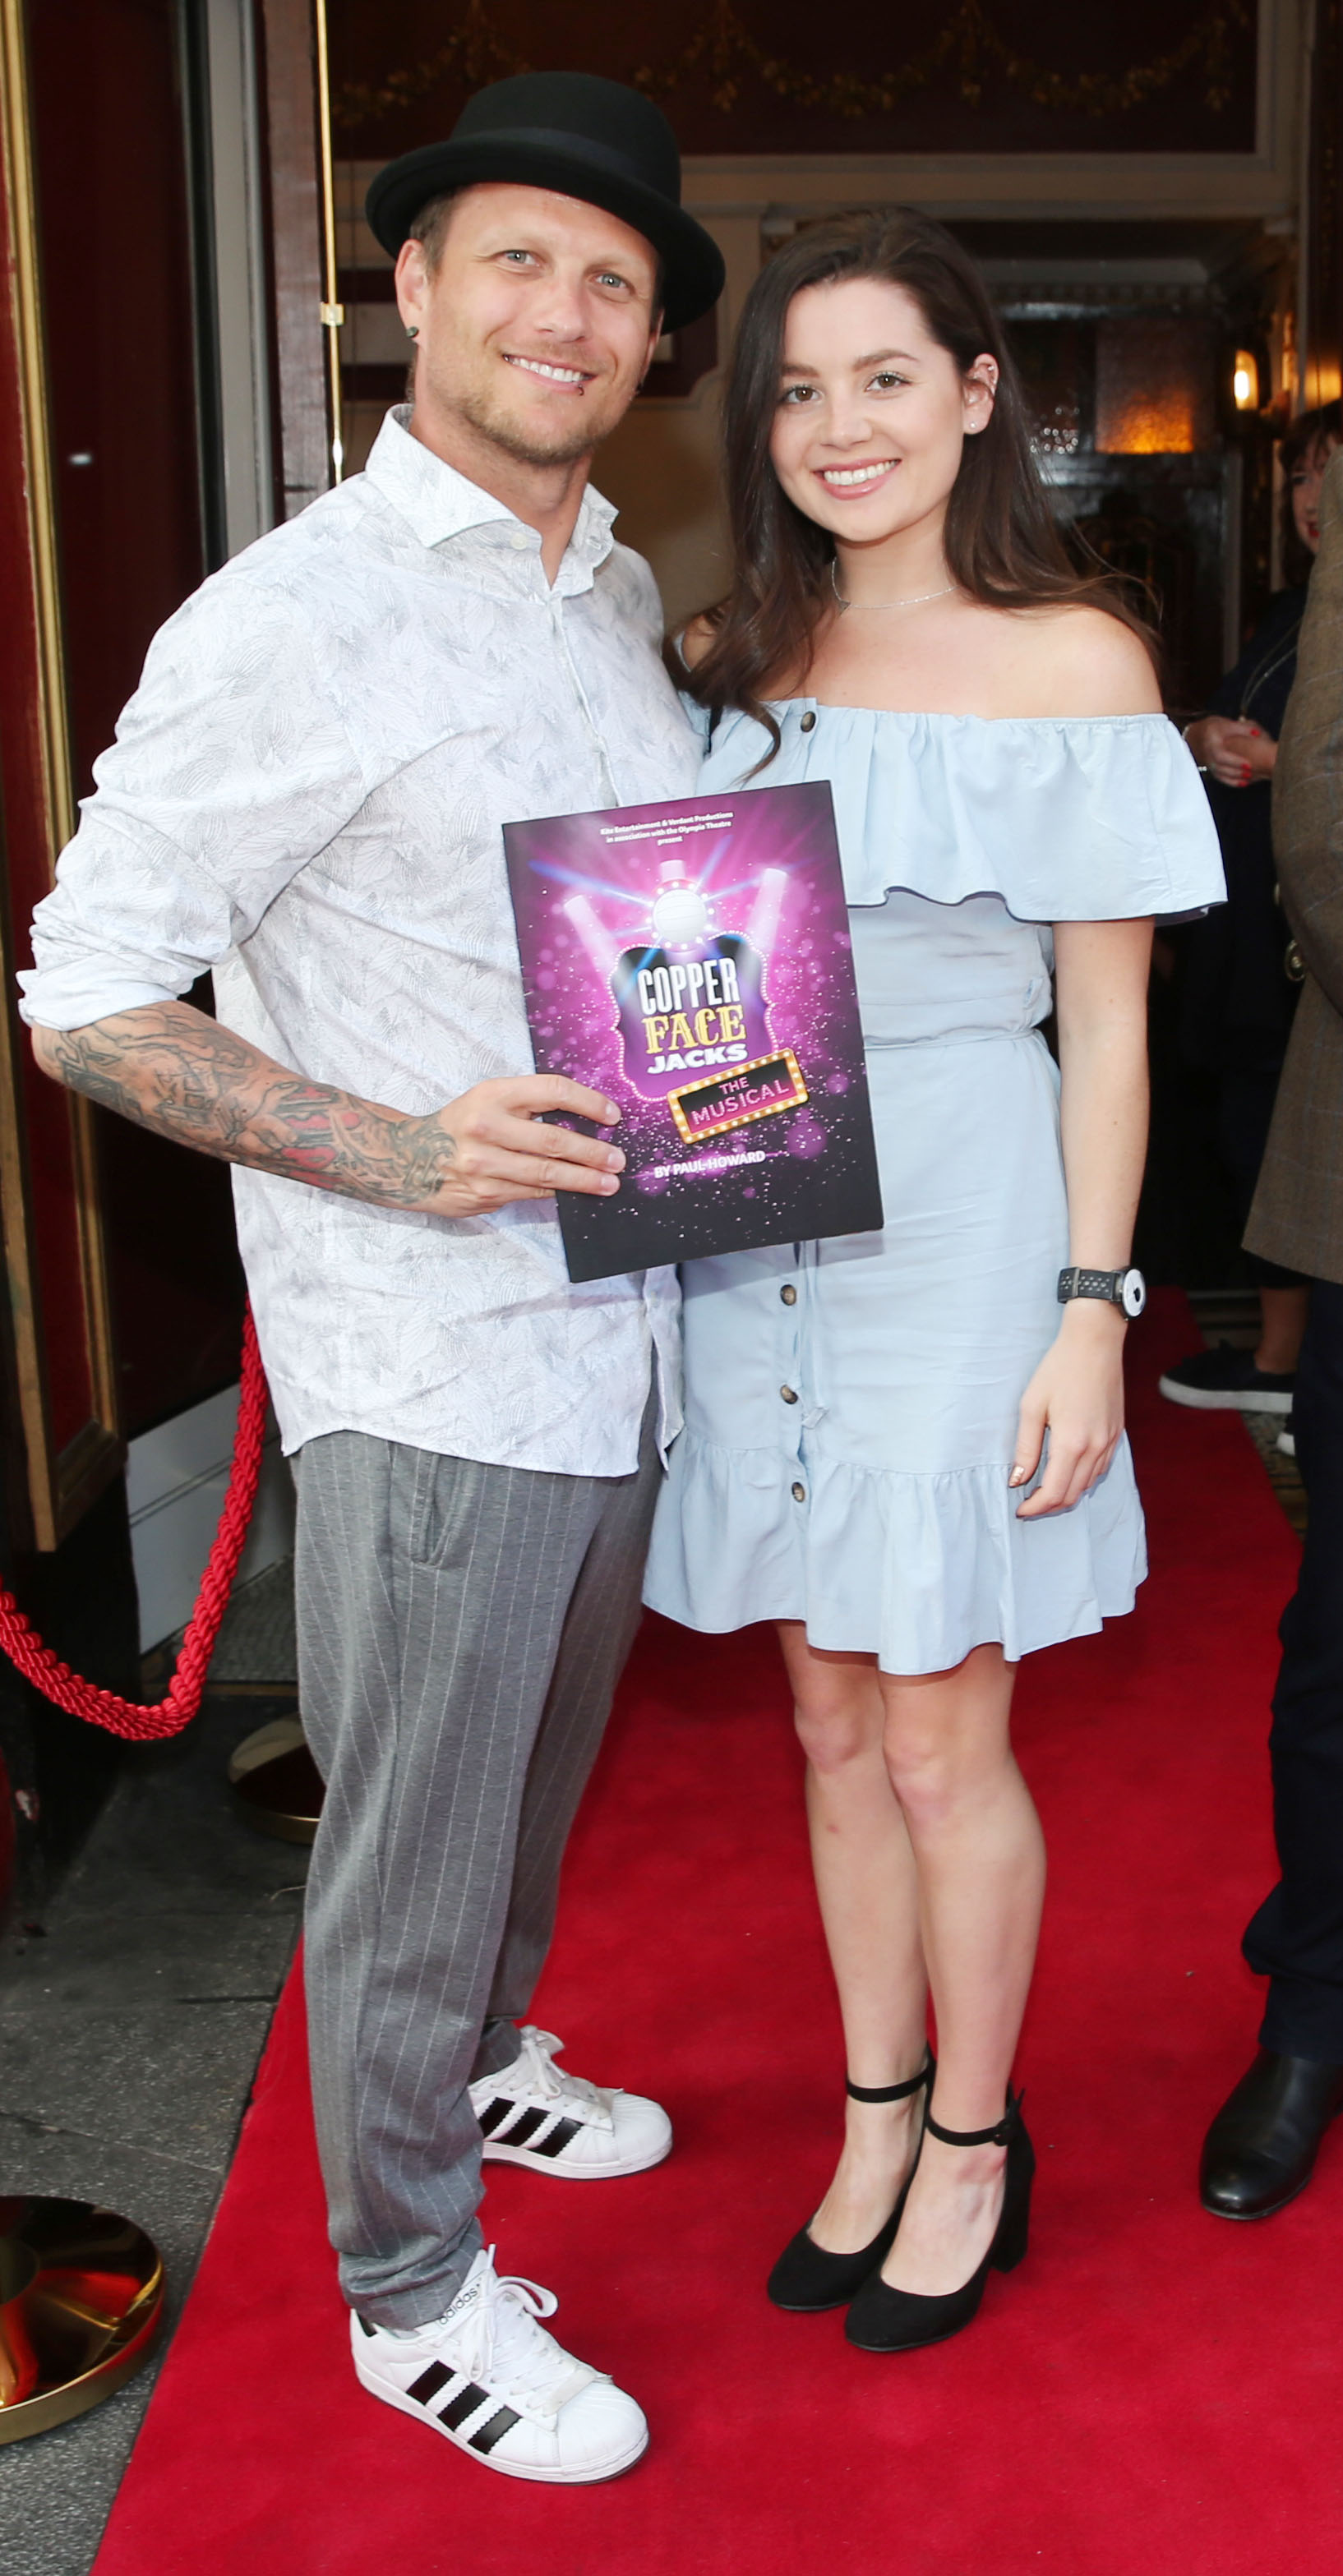 Chris Dylas and Ashling Brody  at the opening night of  Copper Face Jacks The Musical at the Olympia Theatre which  runs until the 10th August.Photo: Leon Farrell/Photocall Ireland.